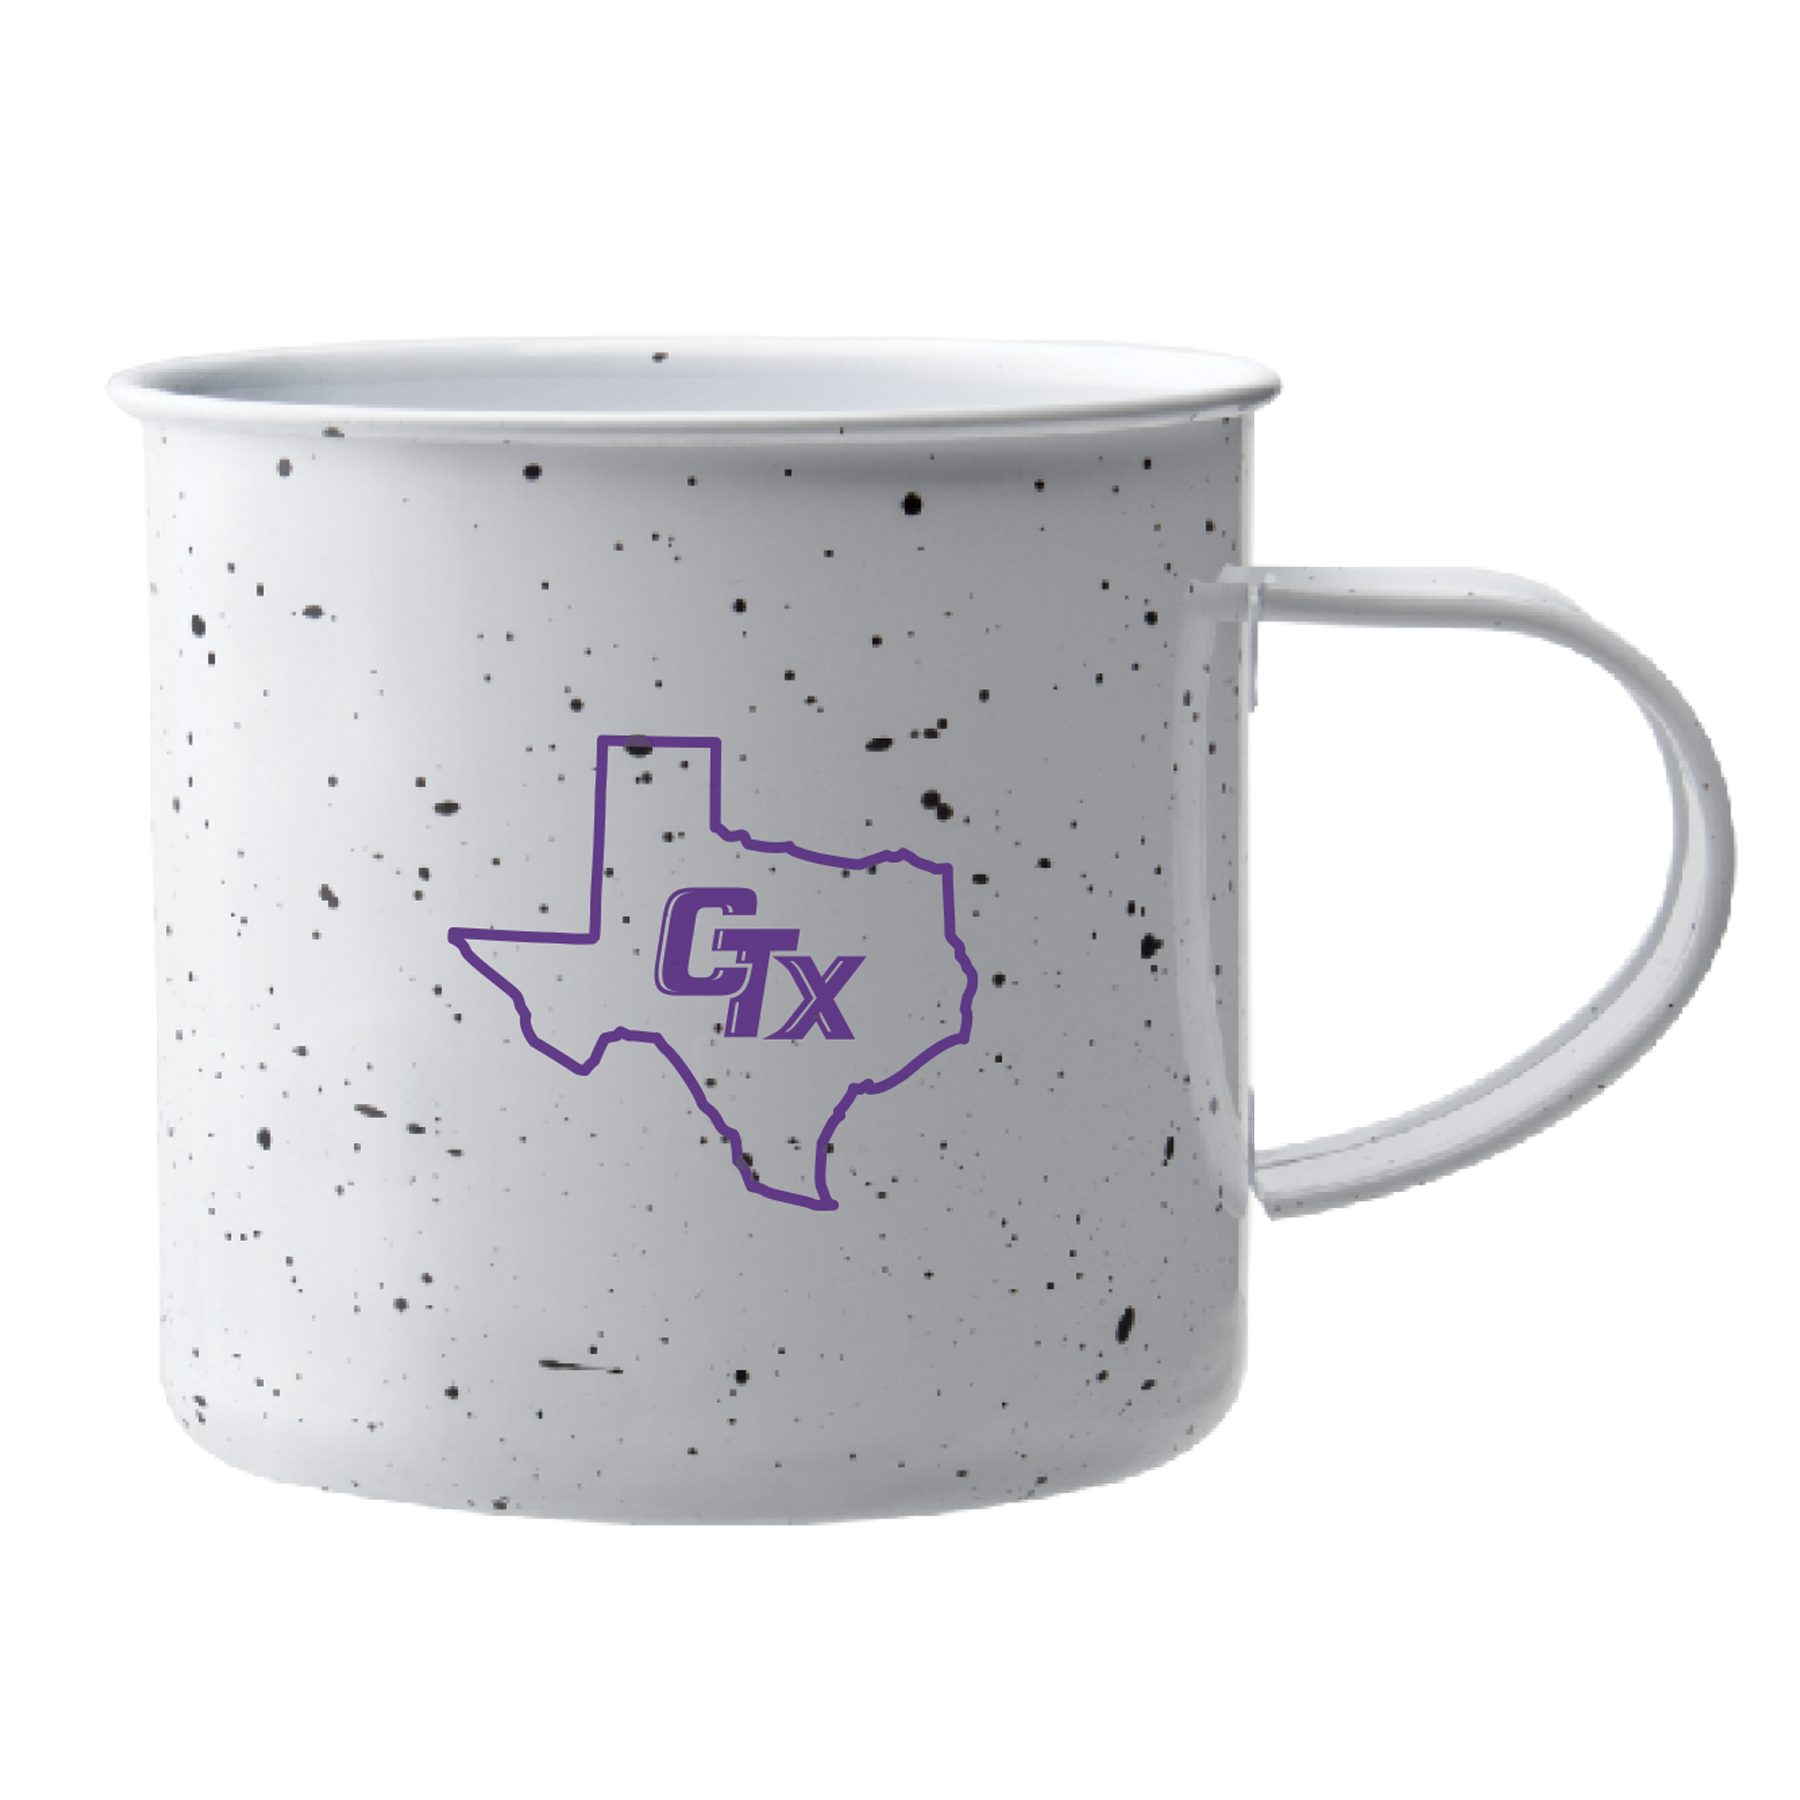 Camping Mug - White Speckled